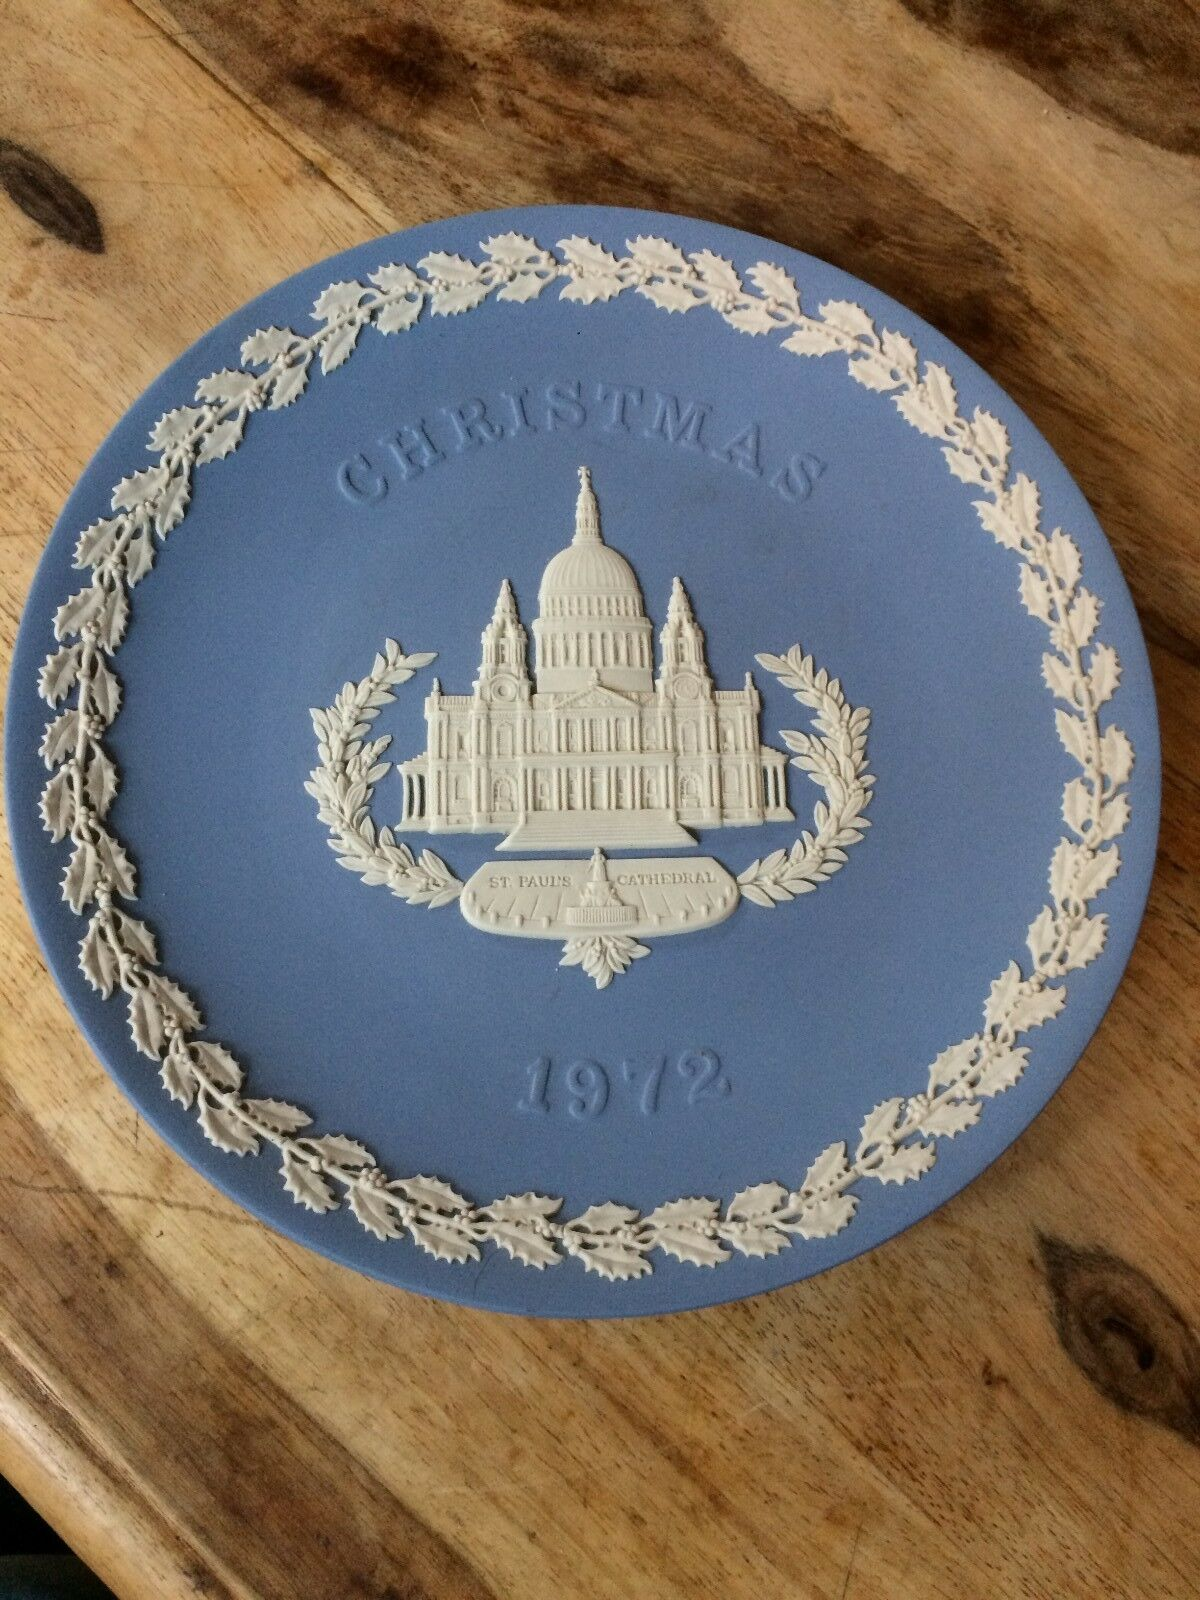 Image 1 - Wedgwood Jasper Ware Blue plate Christmas 1972 - St Paul's Cathedral